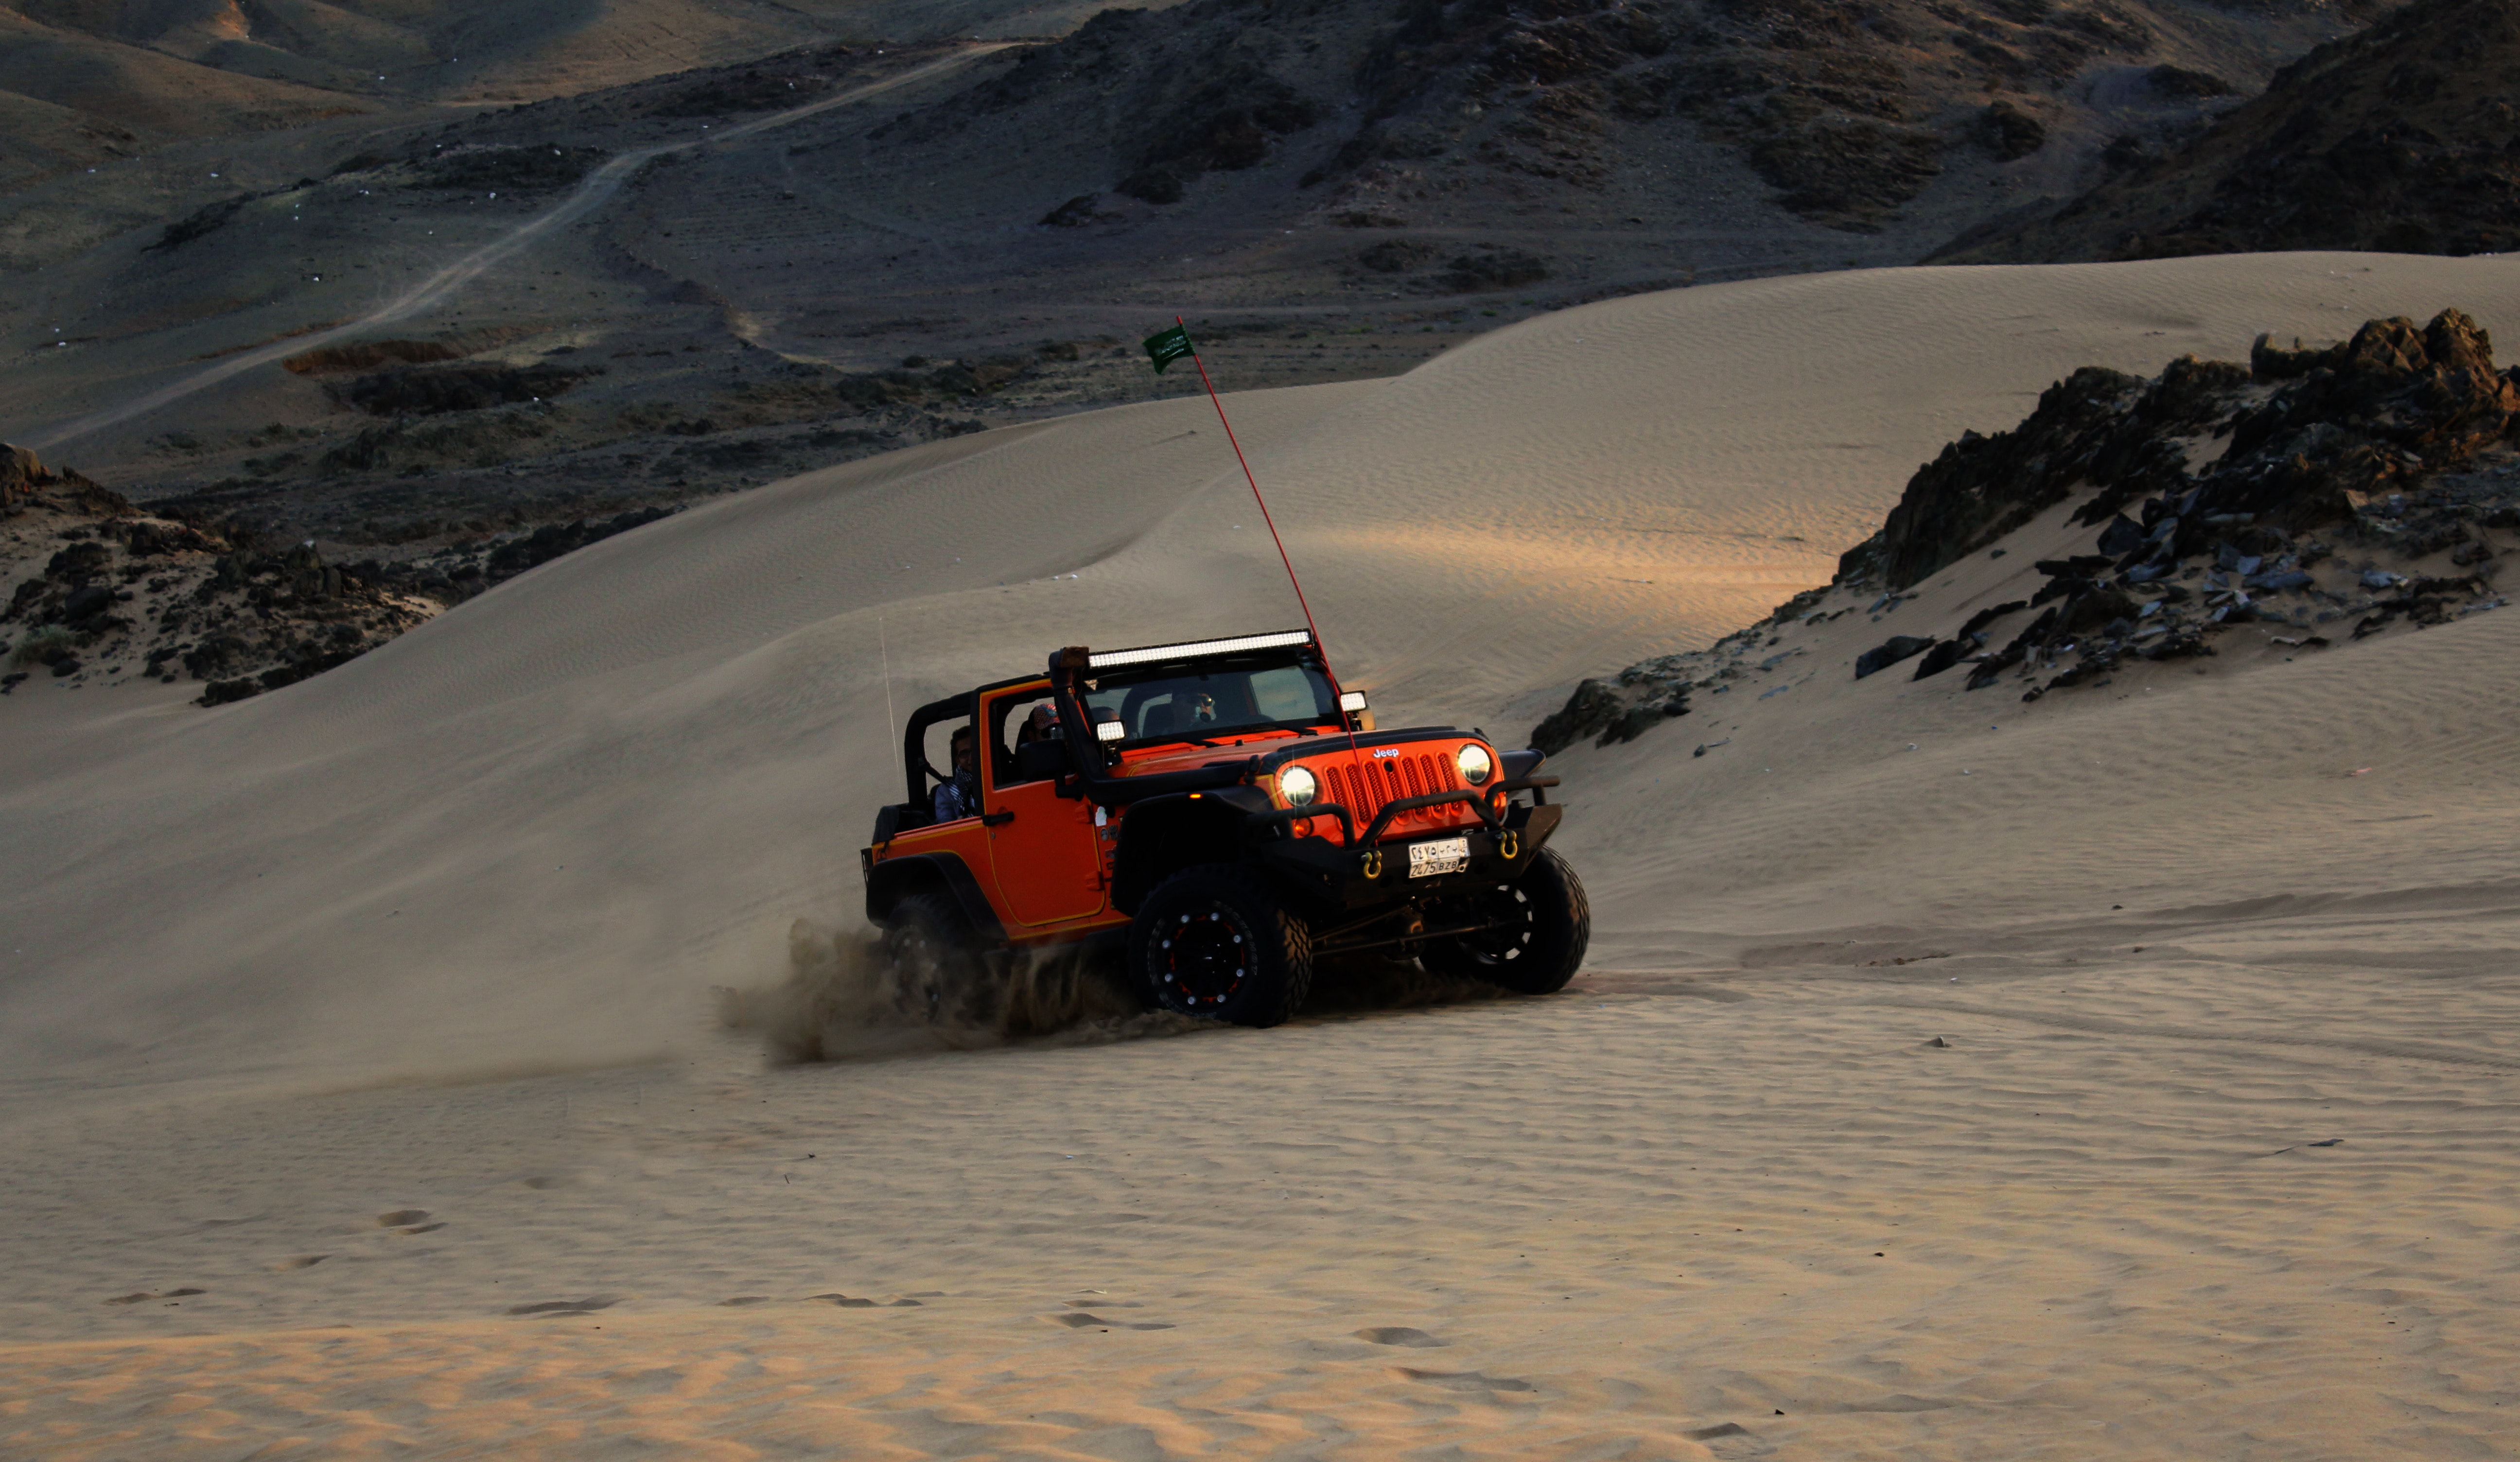 Red jeep wrangler on white covered field photo